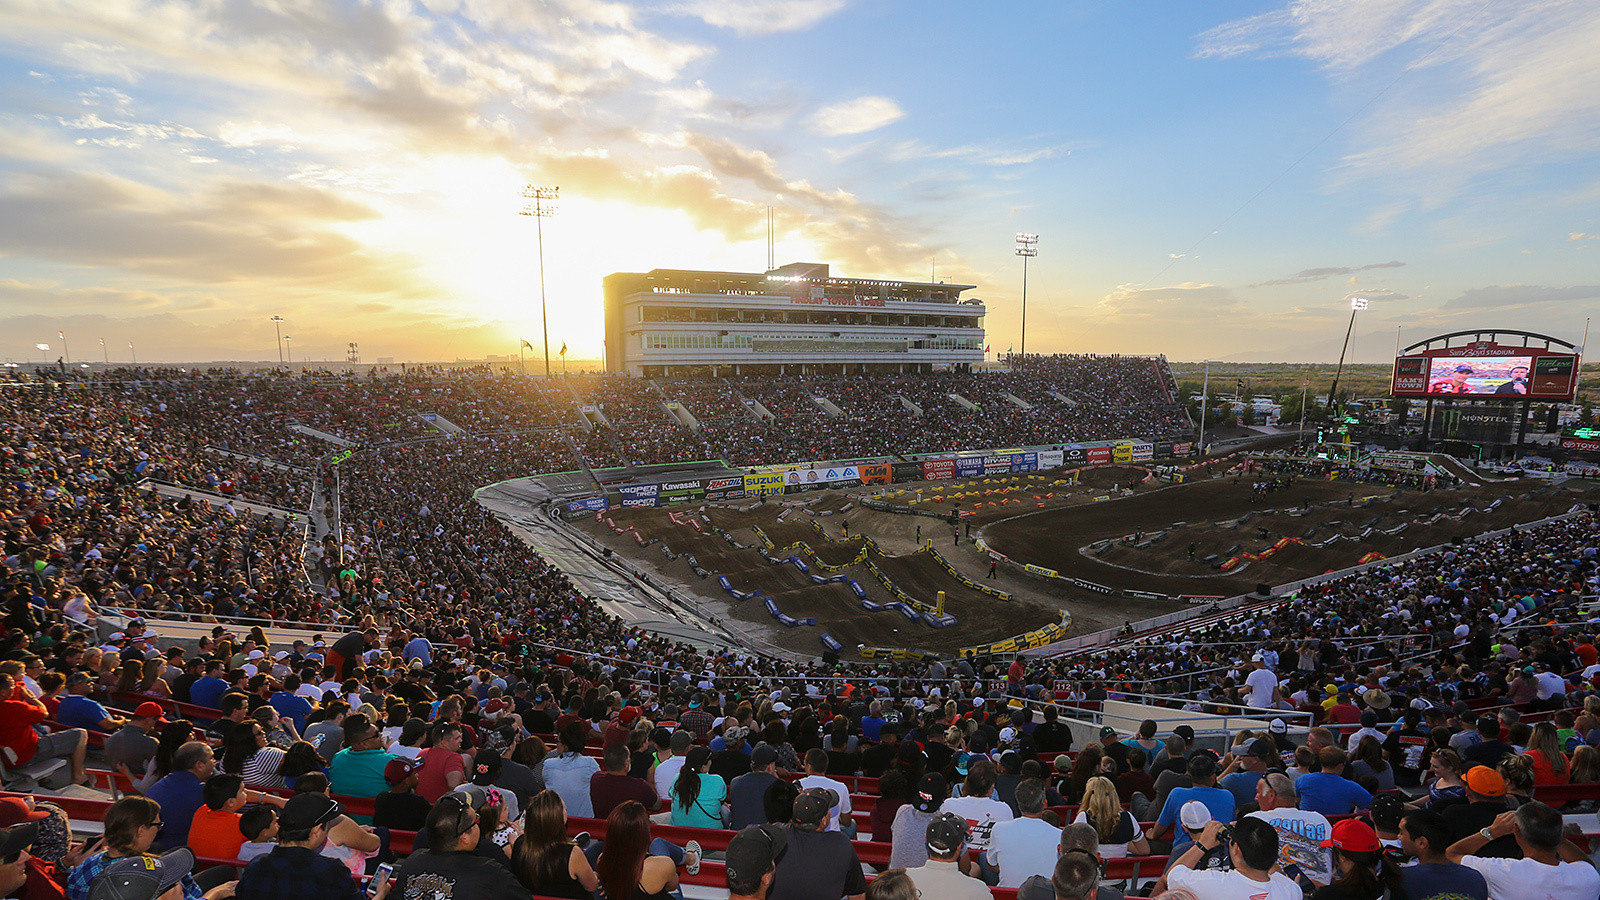 As the sun started to set on another Supercross season, the crowd was buzzing with excitement. Two hotly contested titles would be decided before the night was over.